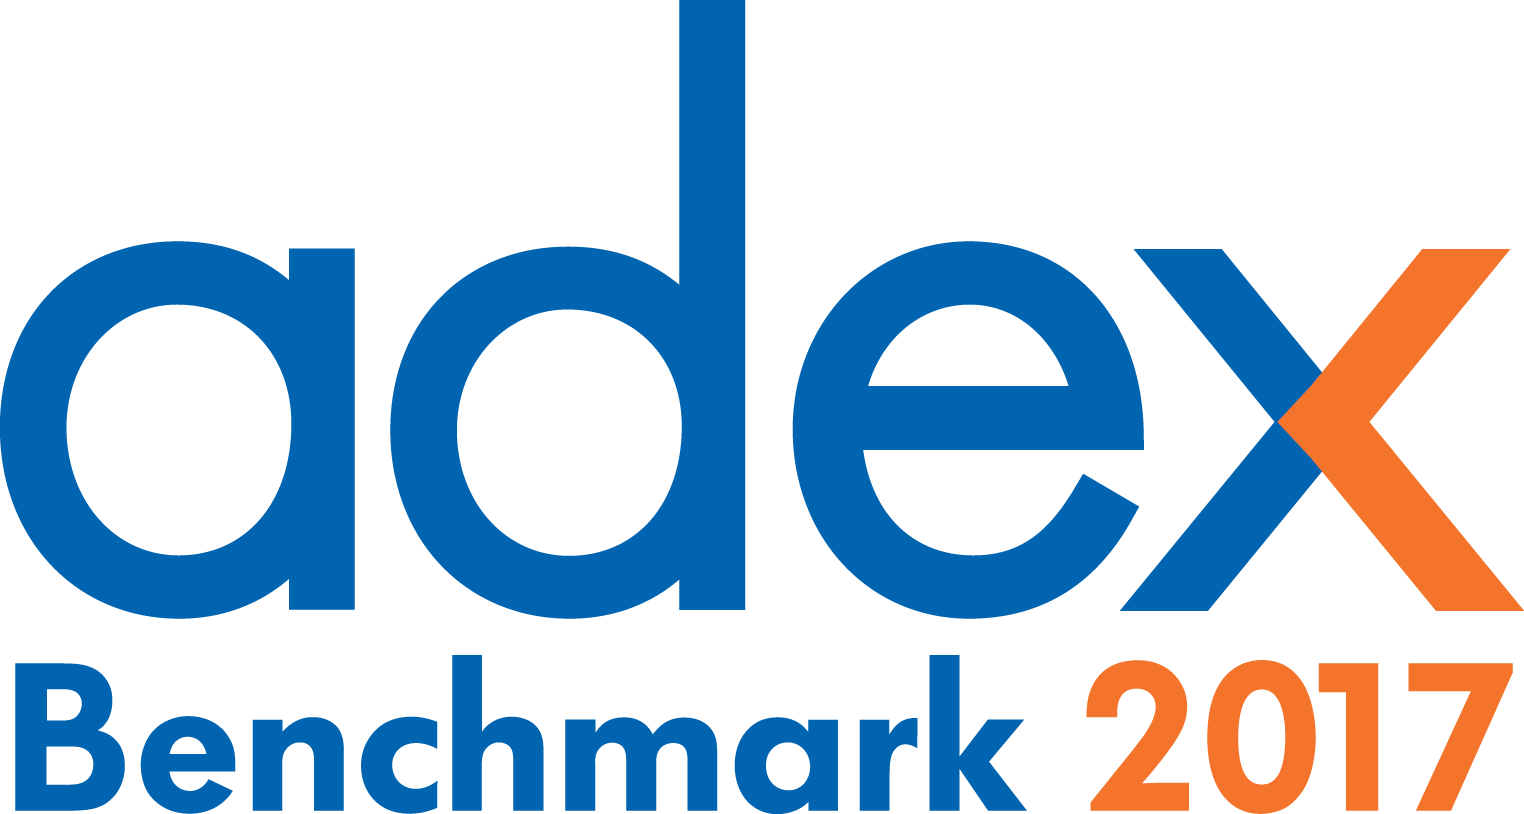 adex Benchmark - 2017updated colours